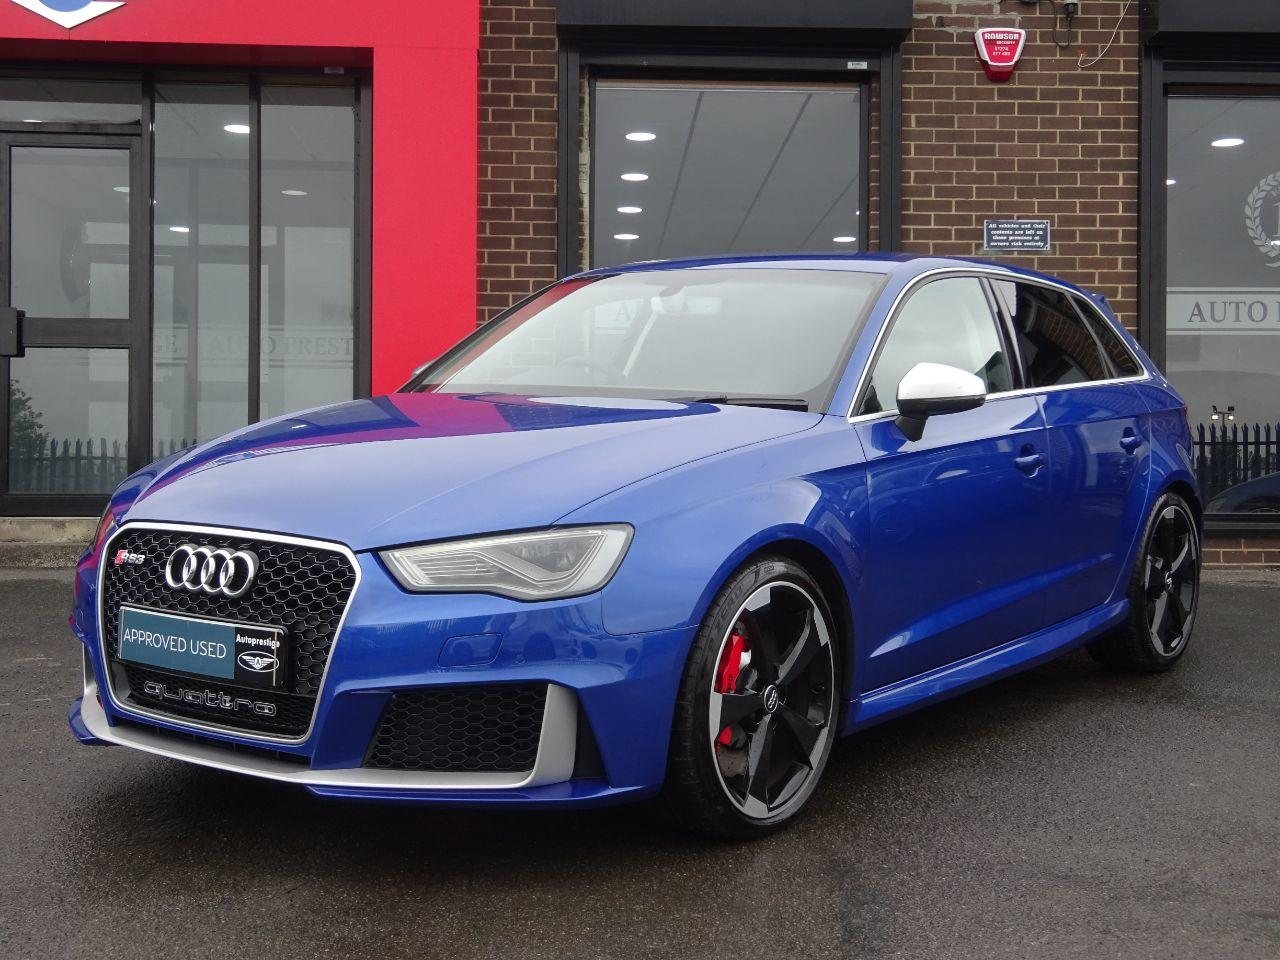 Audi RS3 2.5 TFSI Quattro 5dr S Tronic 65 REG SEPANG BLUE AUDI WARRANTY MAG RIDE DYNAMIC PACK SPORTS EXHAUST Hatchback Petrol Blue at Autoprestige Bradford